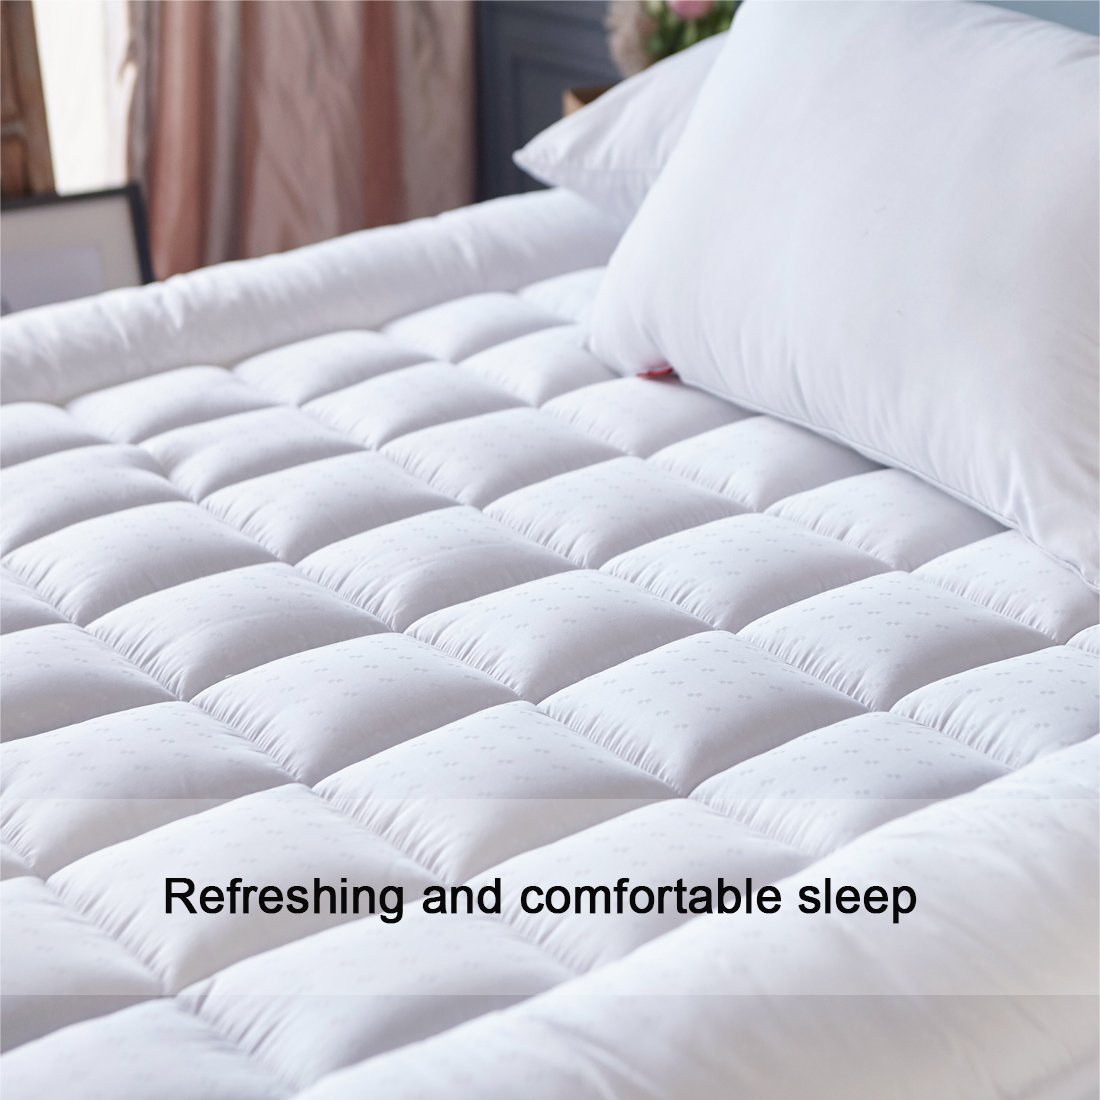 SONORO KATE Mattress Pad Cover Twin XL Size Down Alternative Mattress Topper Fitted Quilted (8-21-Inch Deep Pocket)- Hypoallergenic -(Twin XL, White) by SONORO KATE (Image #4)